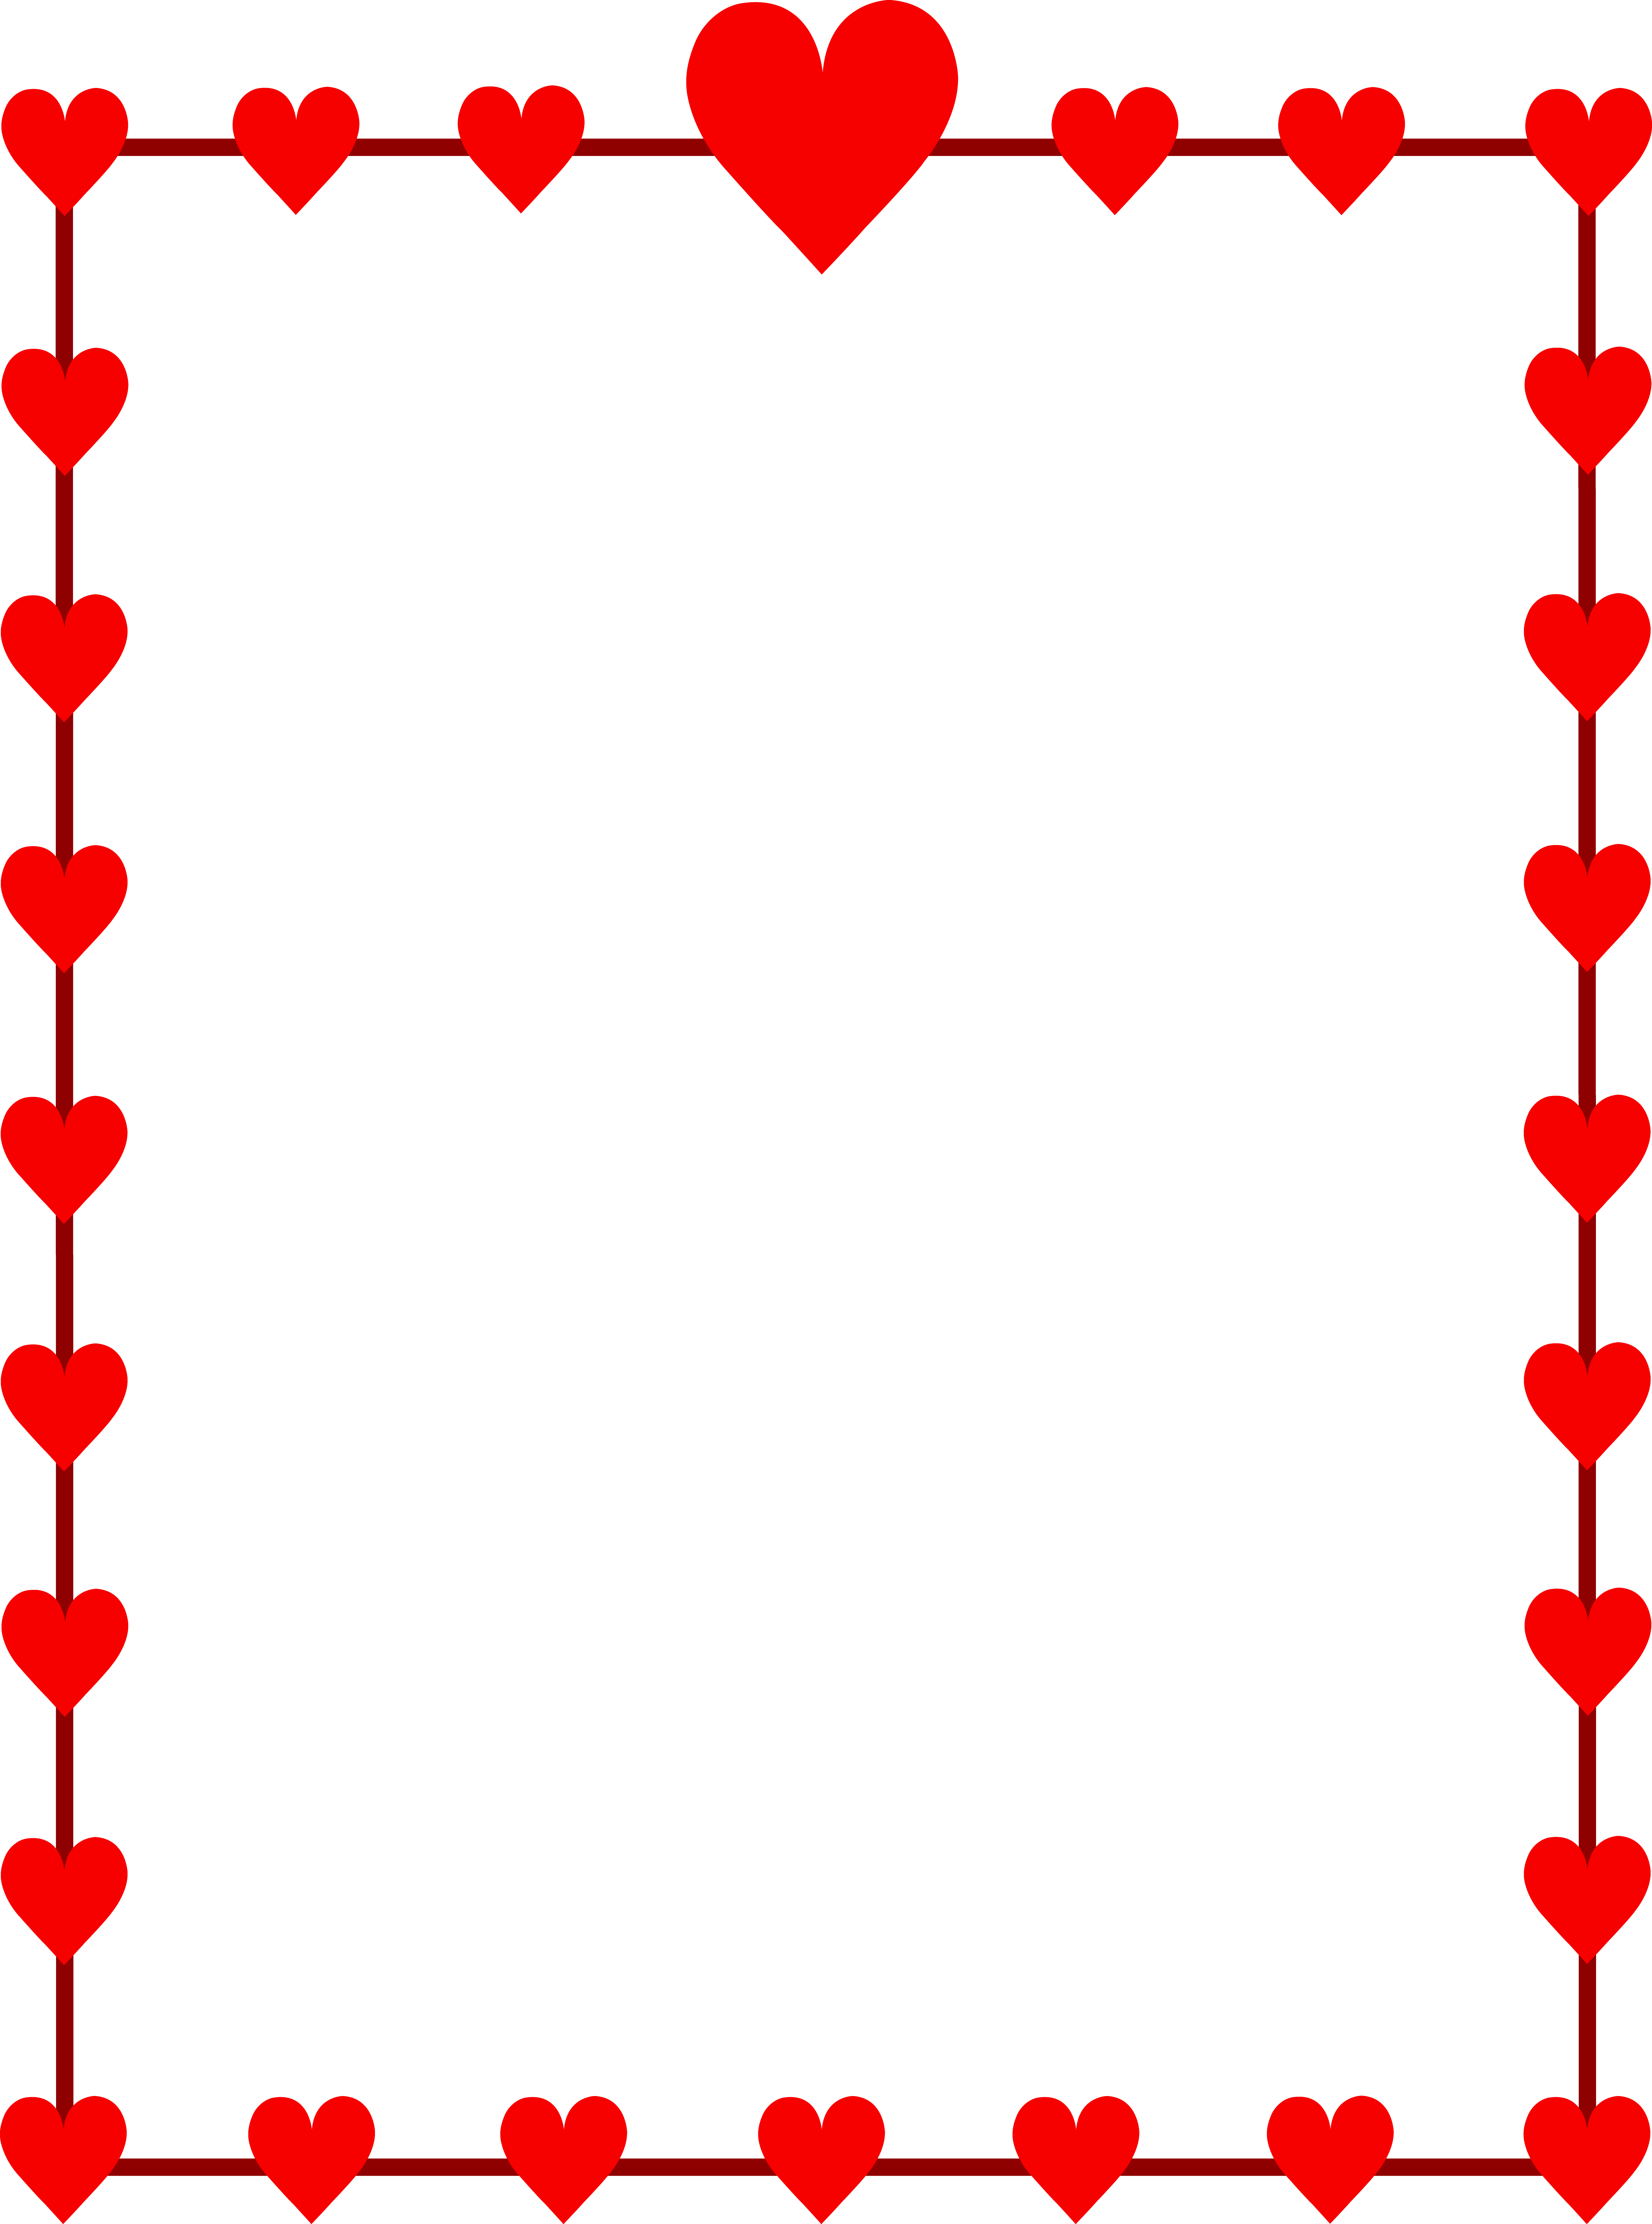 Valentines day border png. Scrap clipart srdie ka